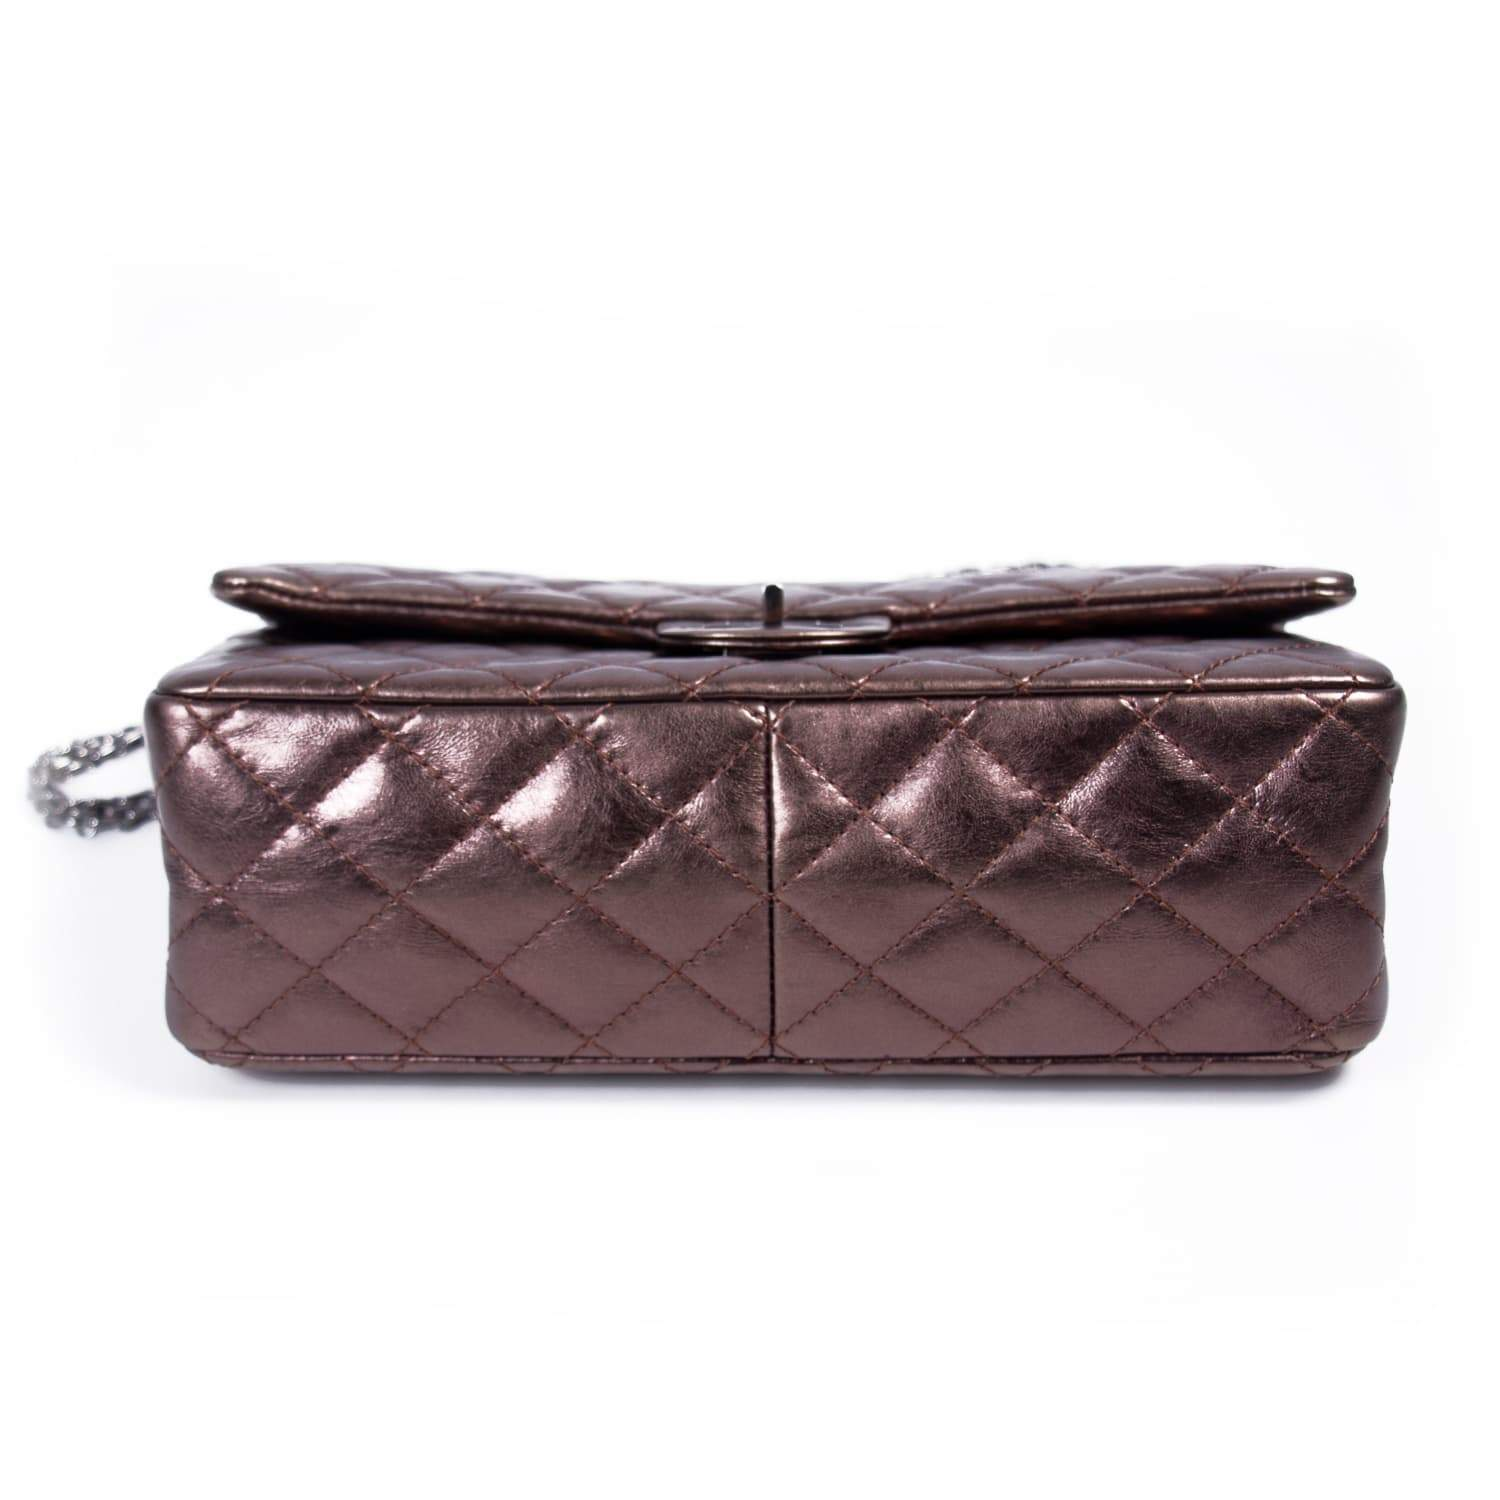 6ccf369ad26e64 Chanel Bronze Quilted Leather Reissue 2.55 Classic 226 Flap Bag